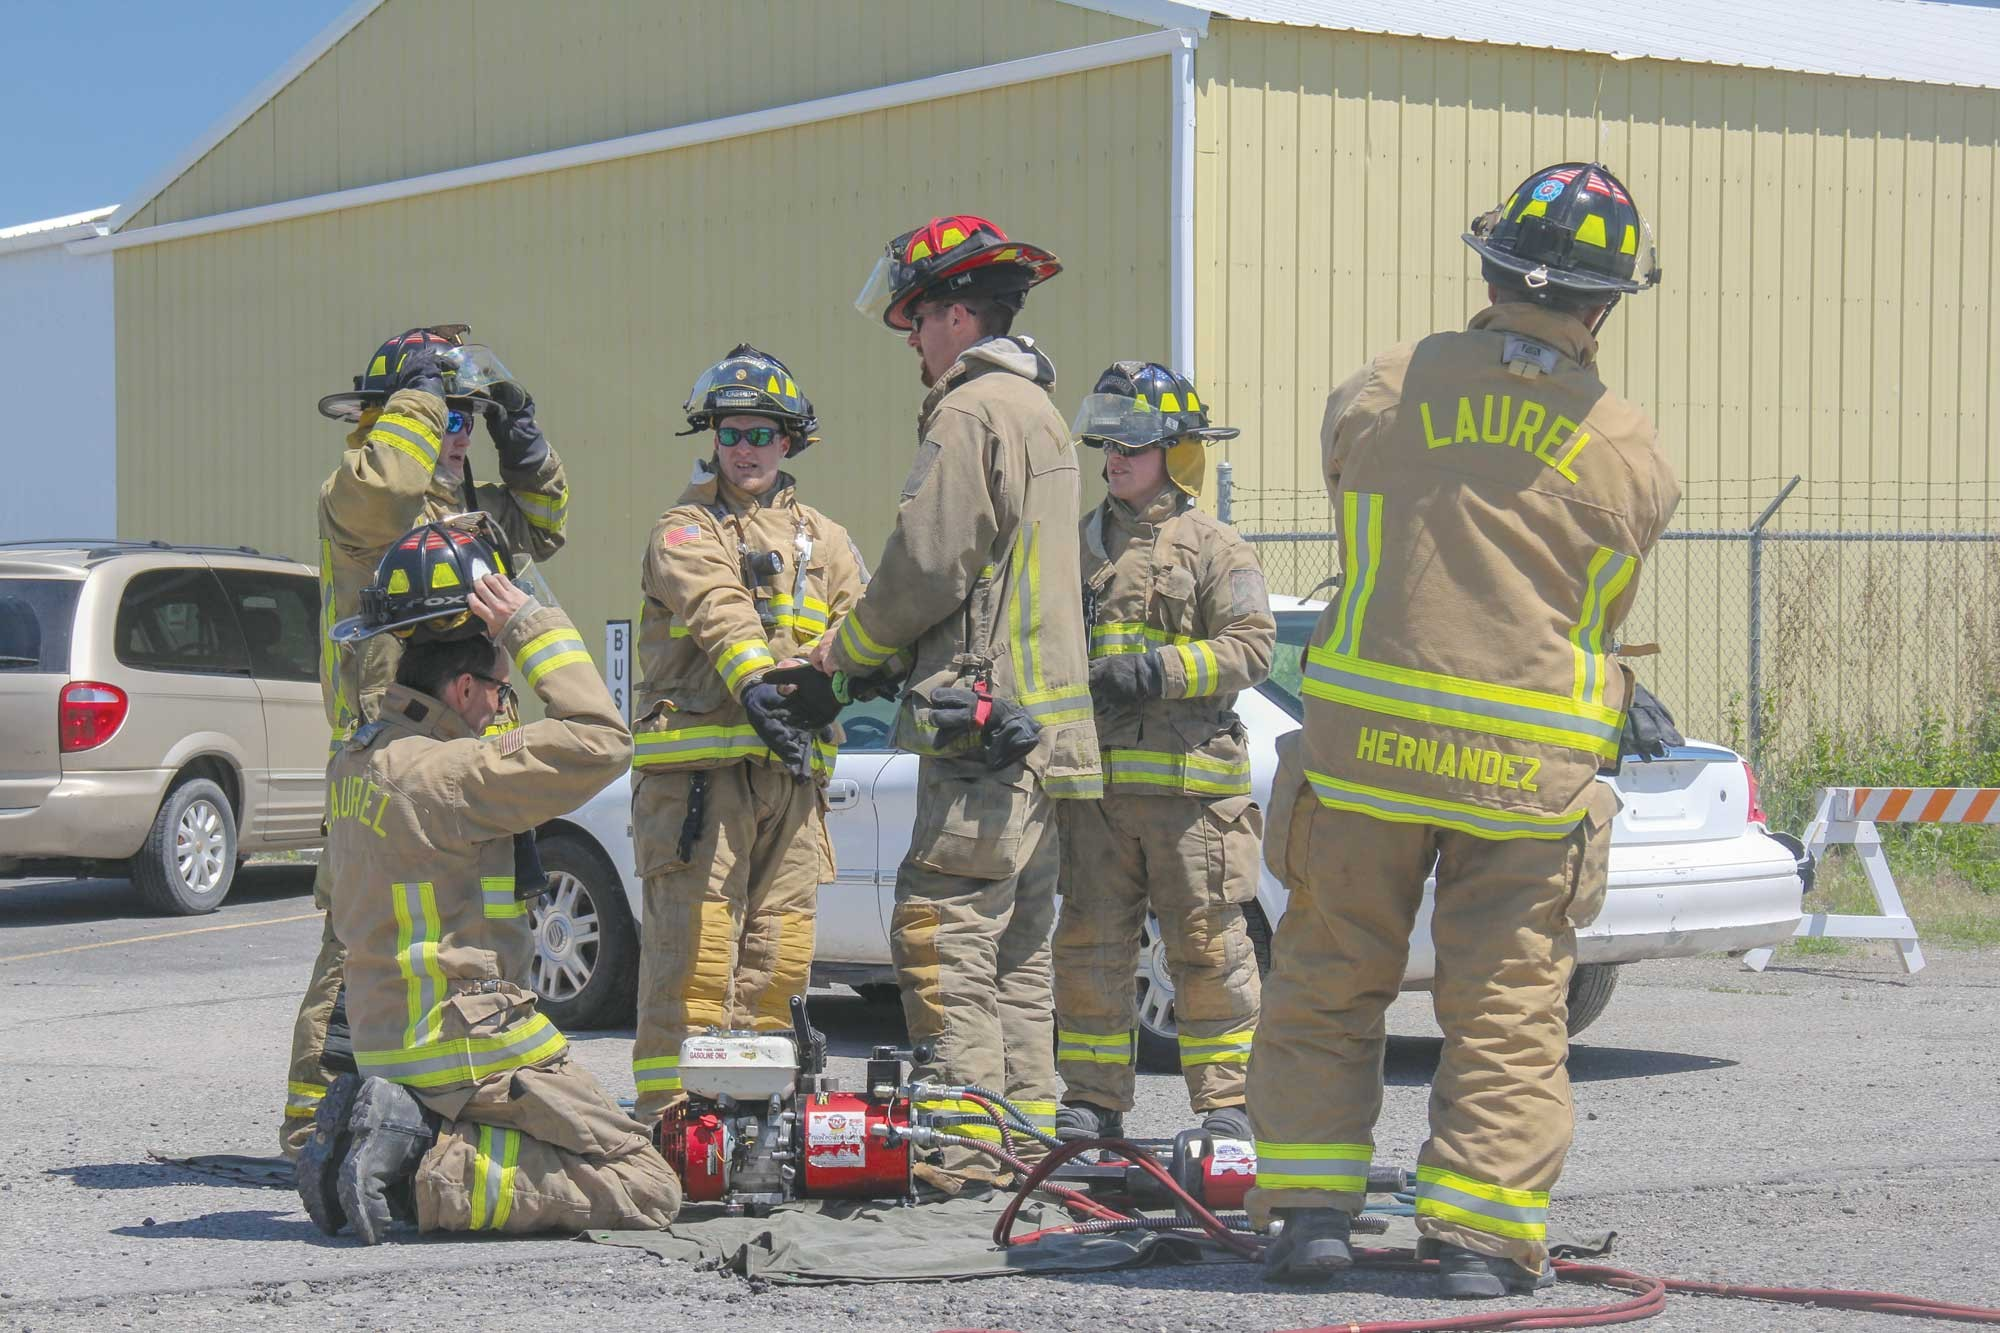 Members of the Laurel Volunteer Fire Department finish putting on their gear before they give a car extraction demonstration.